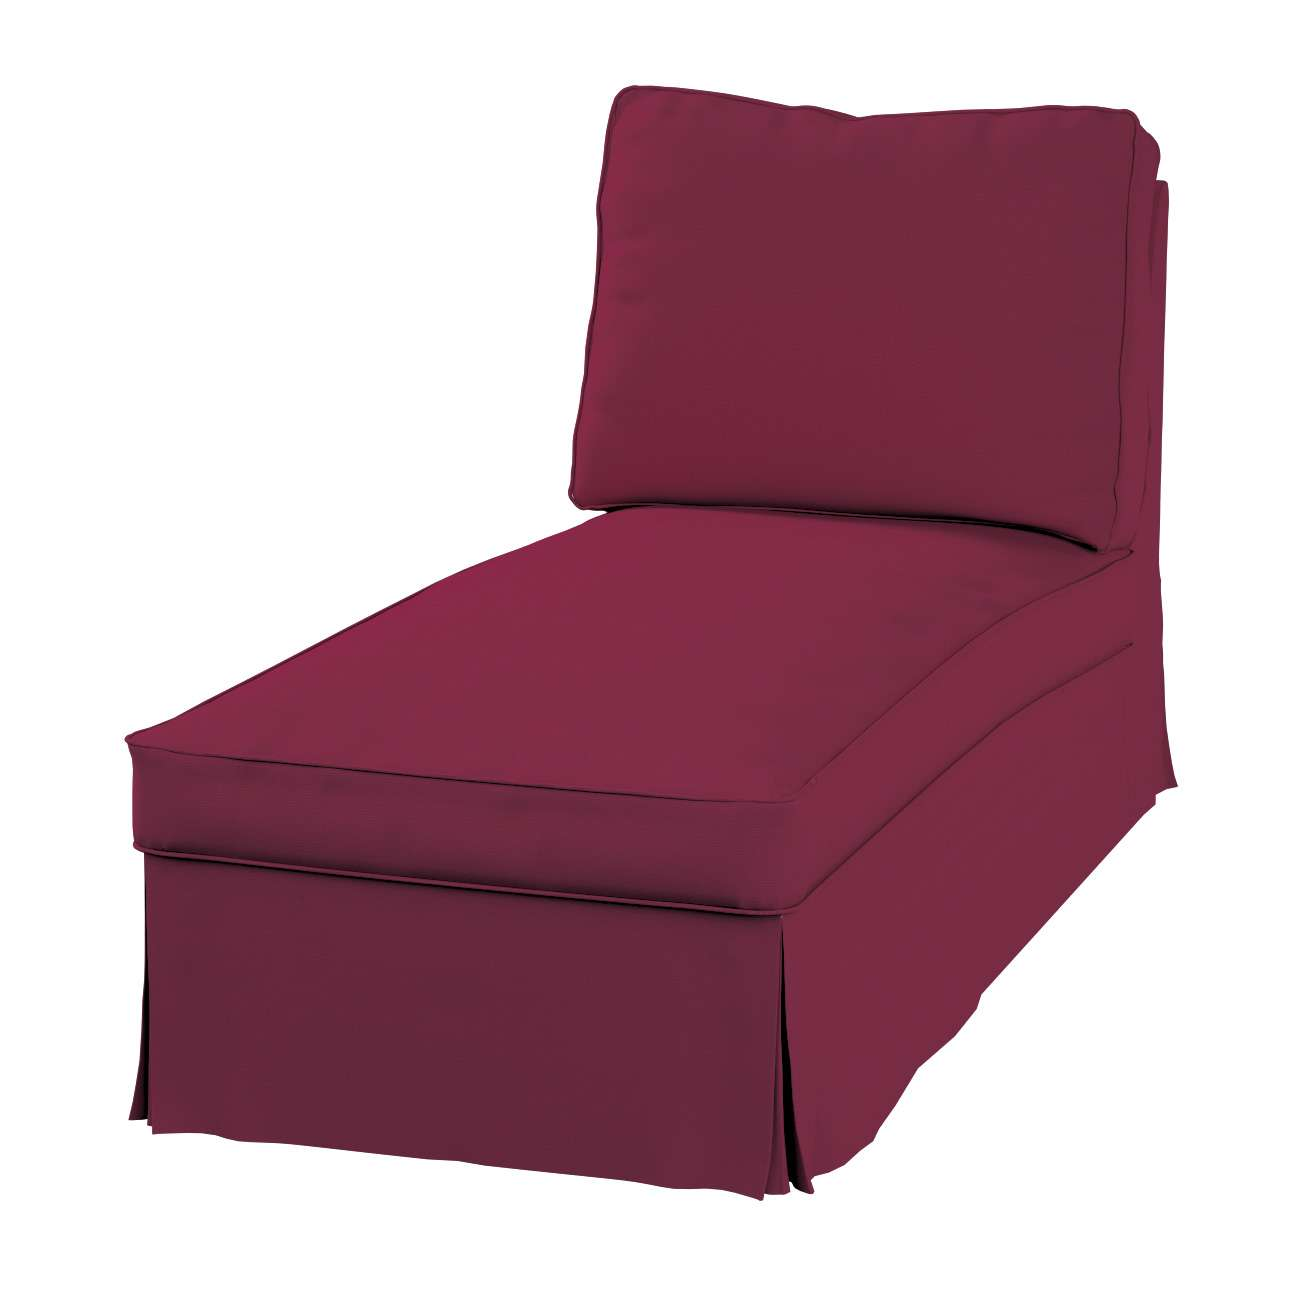 chaise sofa sleeper, chaise recliner chair, chaise furniture, on chaise longue zonder leuning